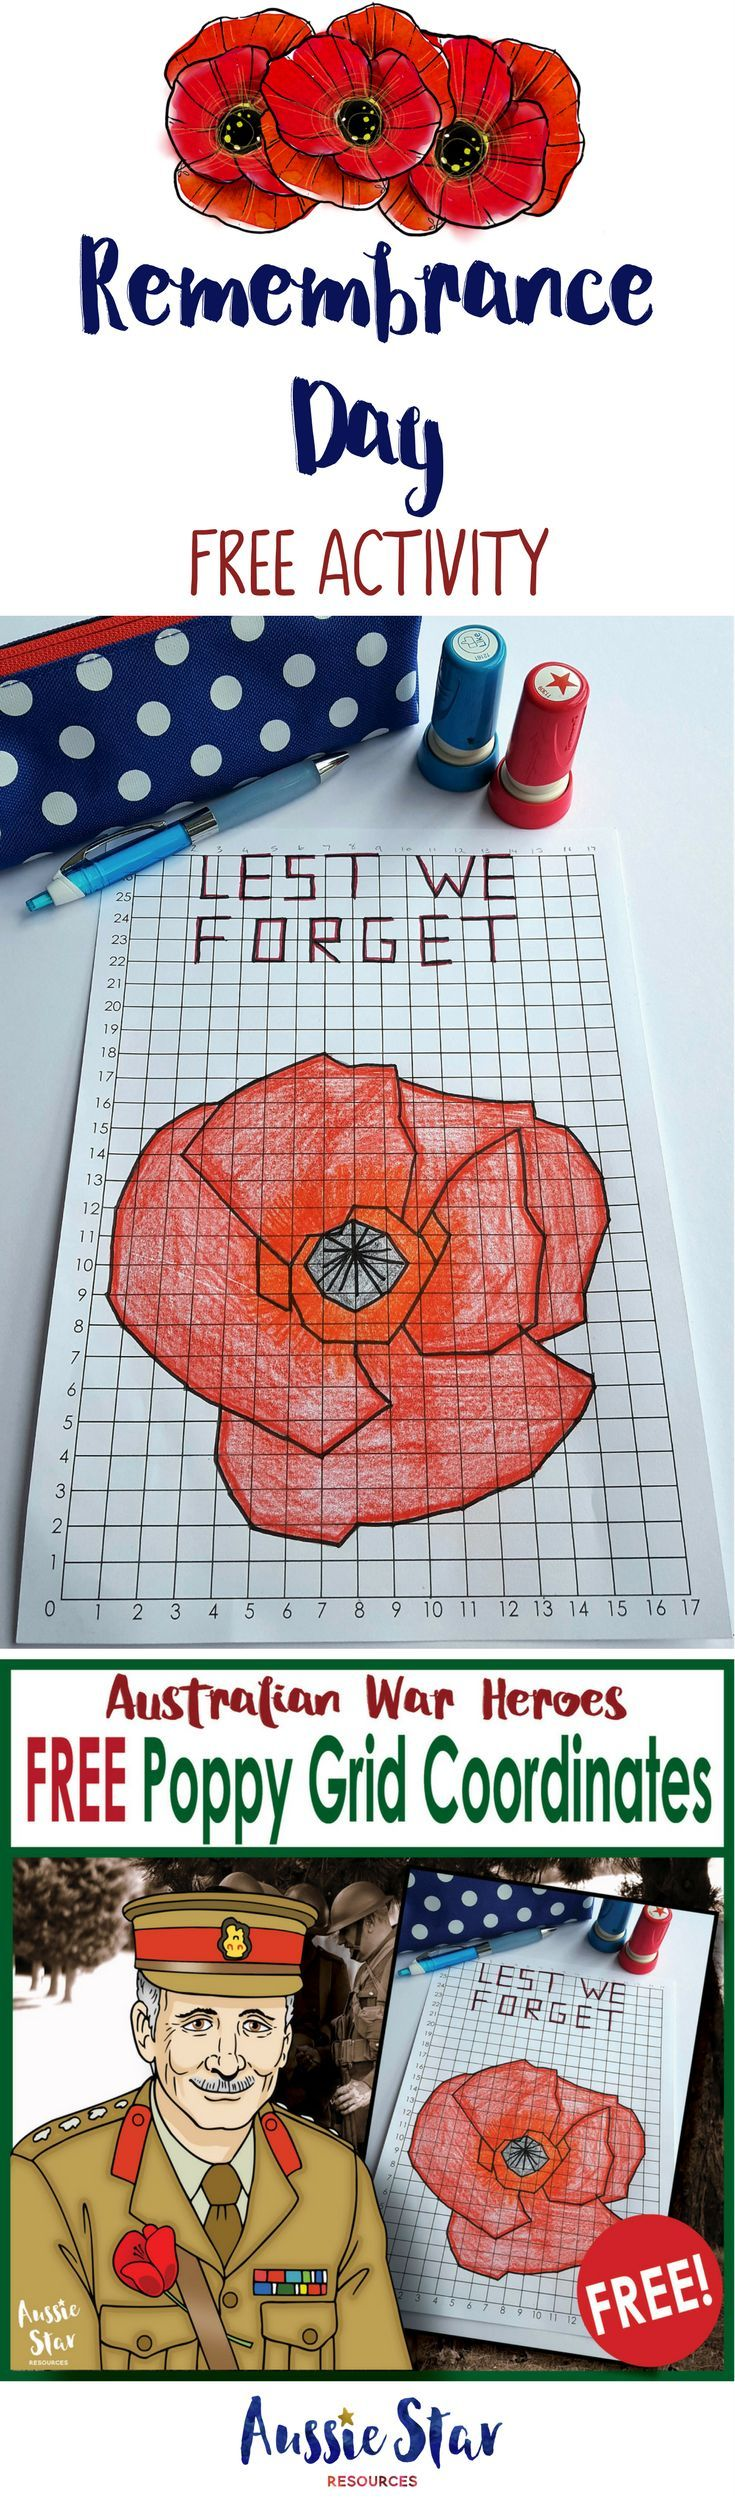 This FREE Remembrance Day teaching resource is a great activity for your upper primary students. This challenging grid coordinates maths activity can be incorporated in to your maths and HASS or History lessons. With 186 steps it will keep your Year 5, 6